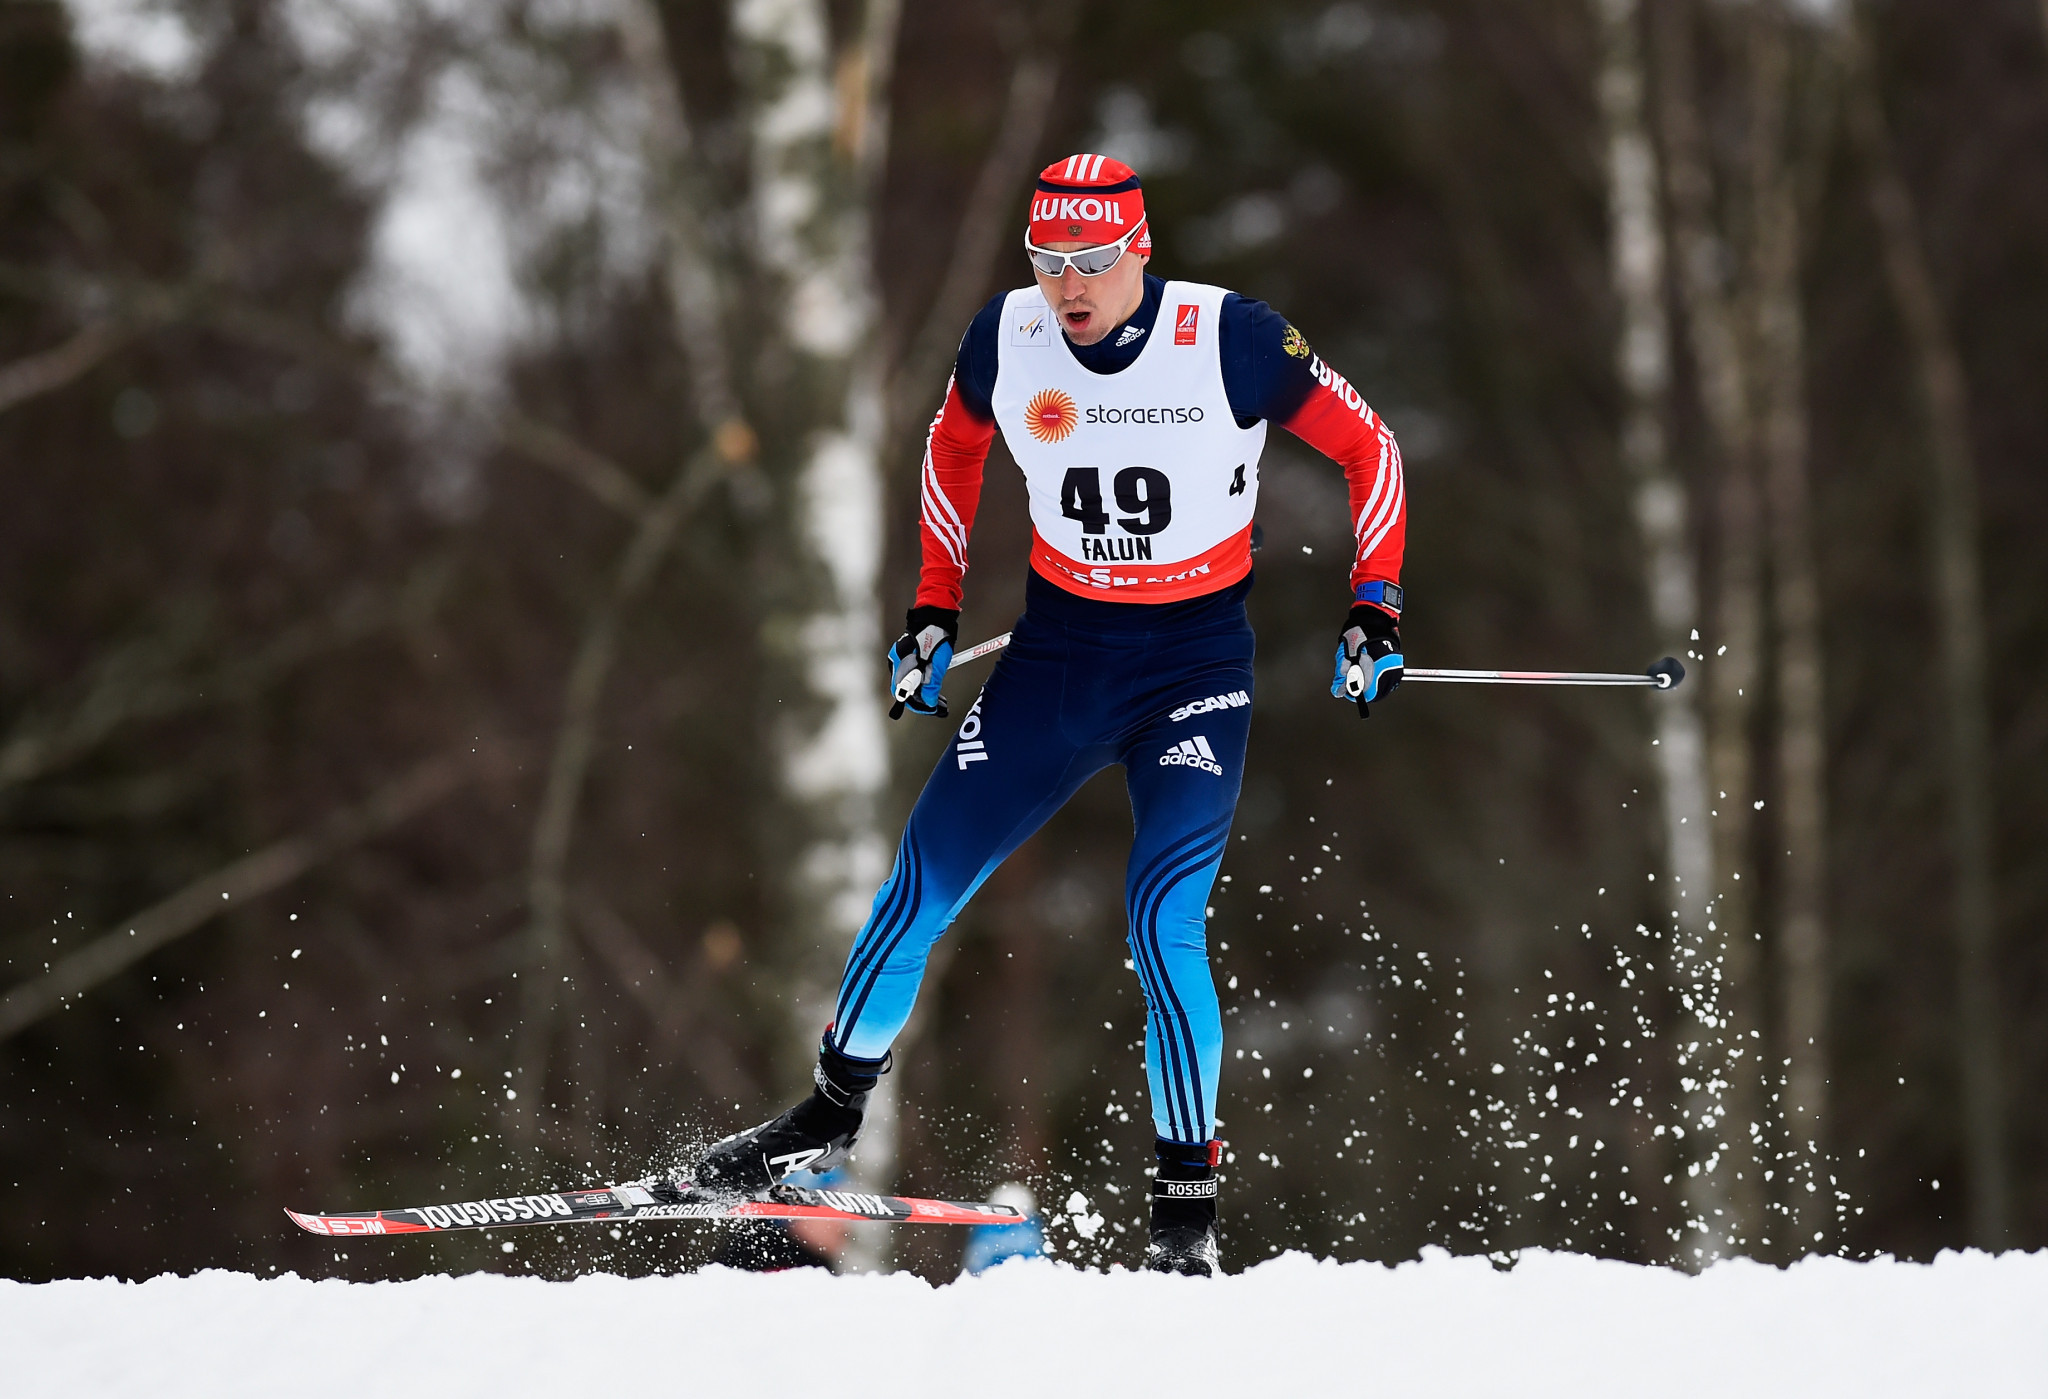 Russian cross-country skier Legkov confirms retirement